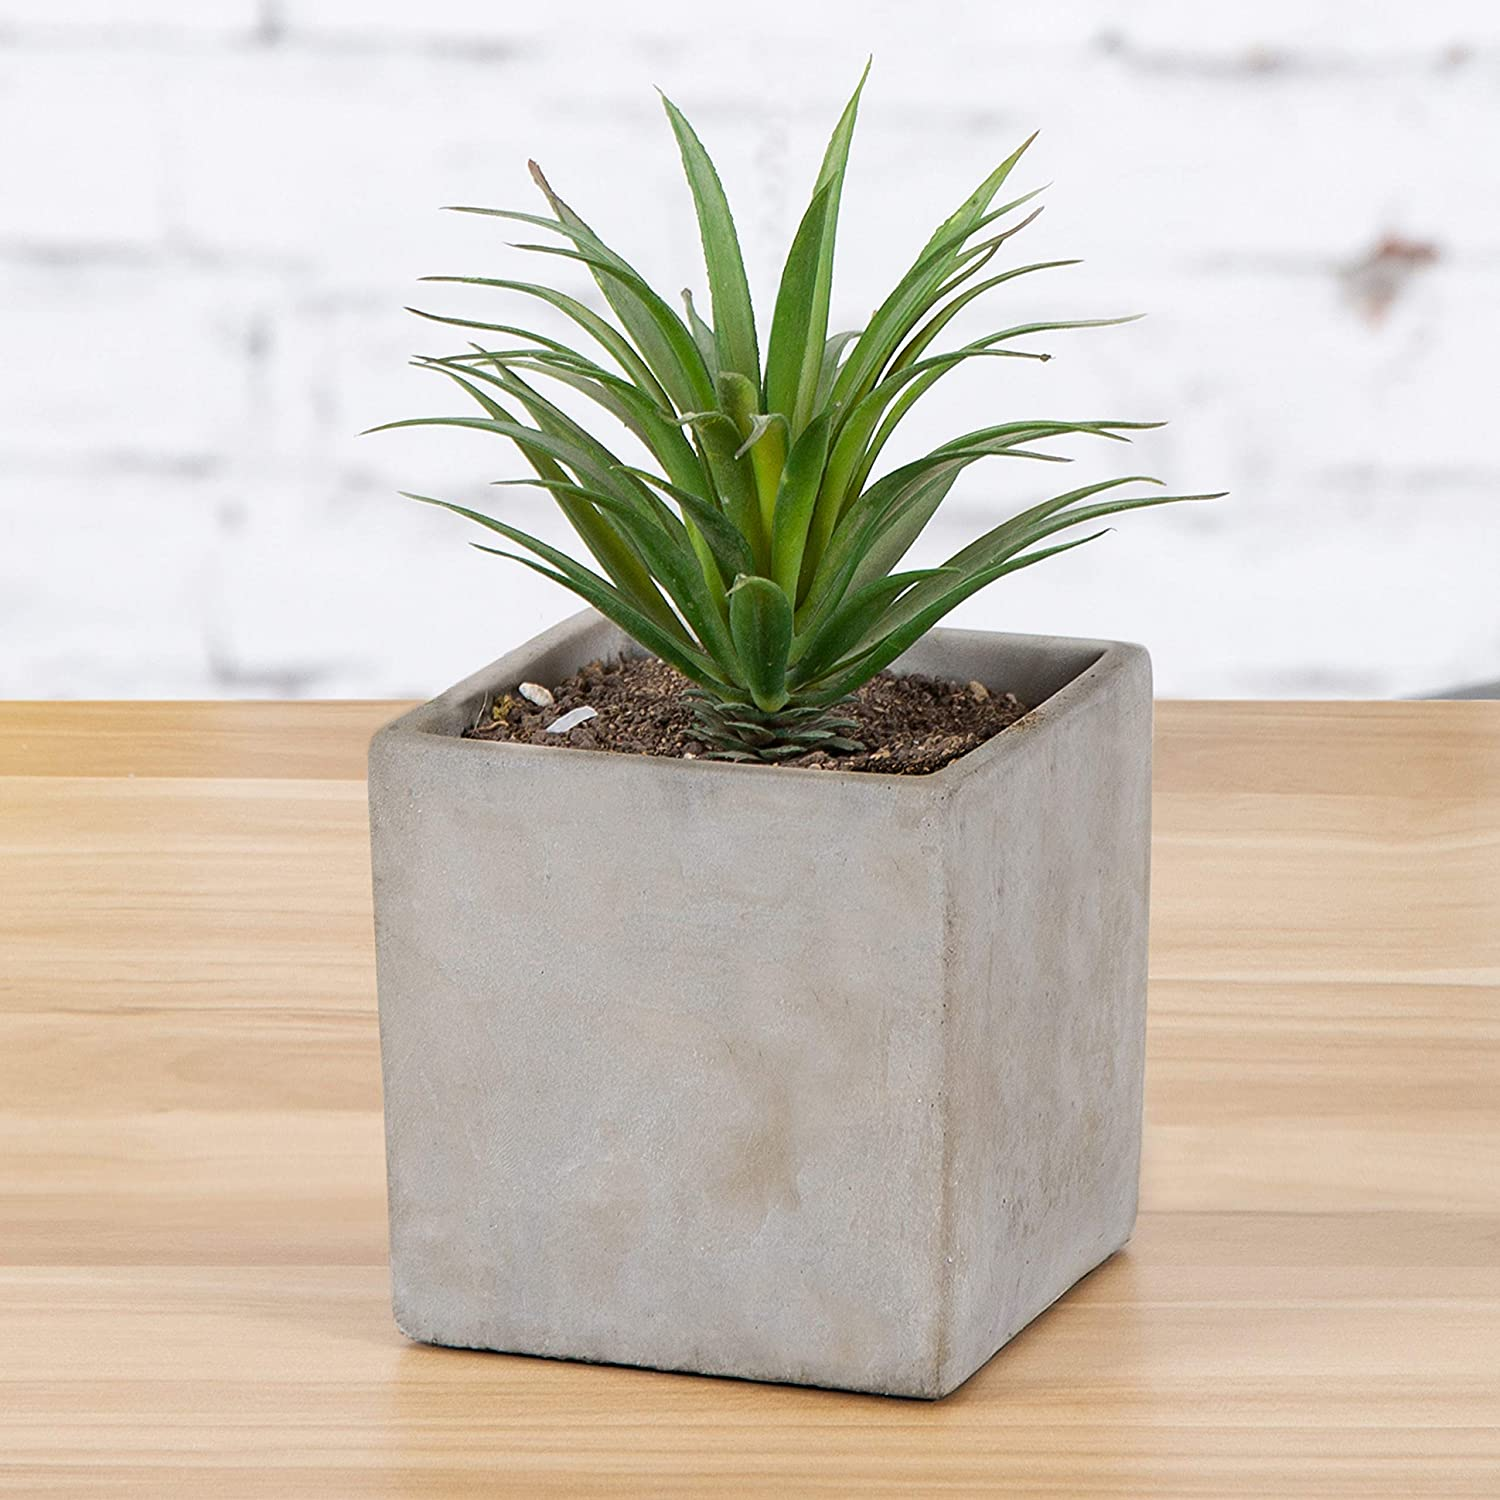 MyGift 4-Inch Cement-Tone Clay Cube Succulent Planter Pot